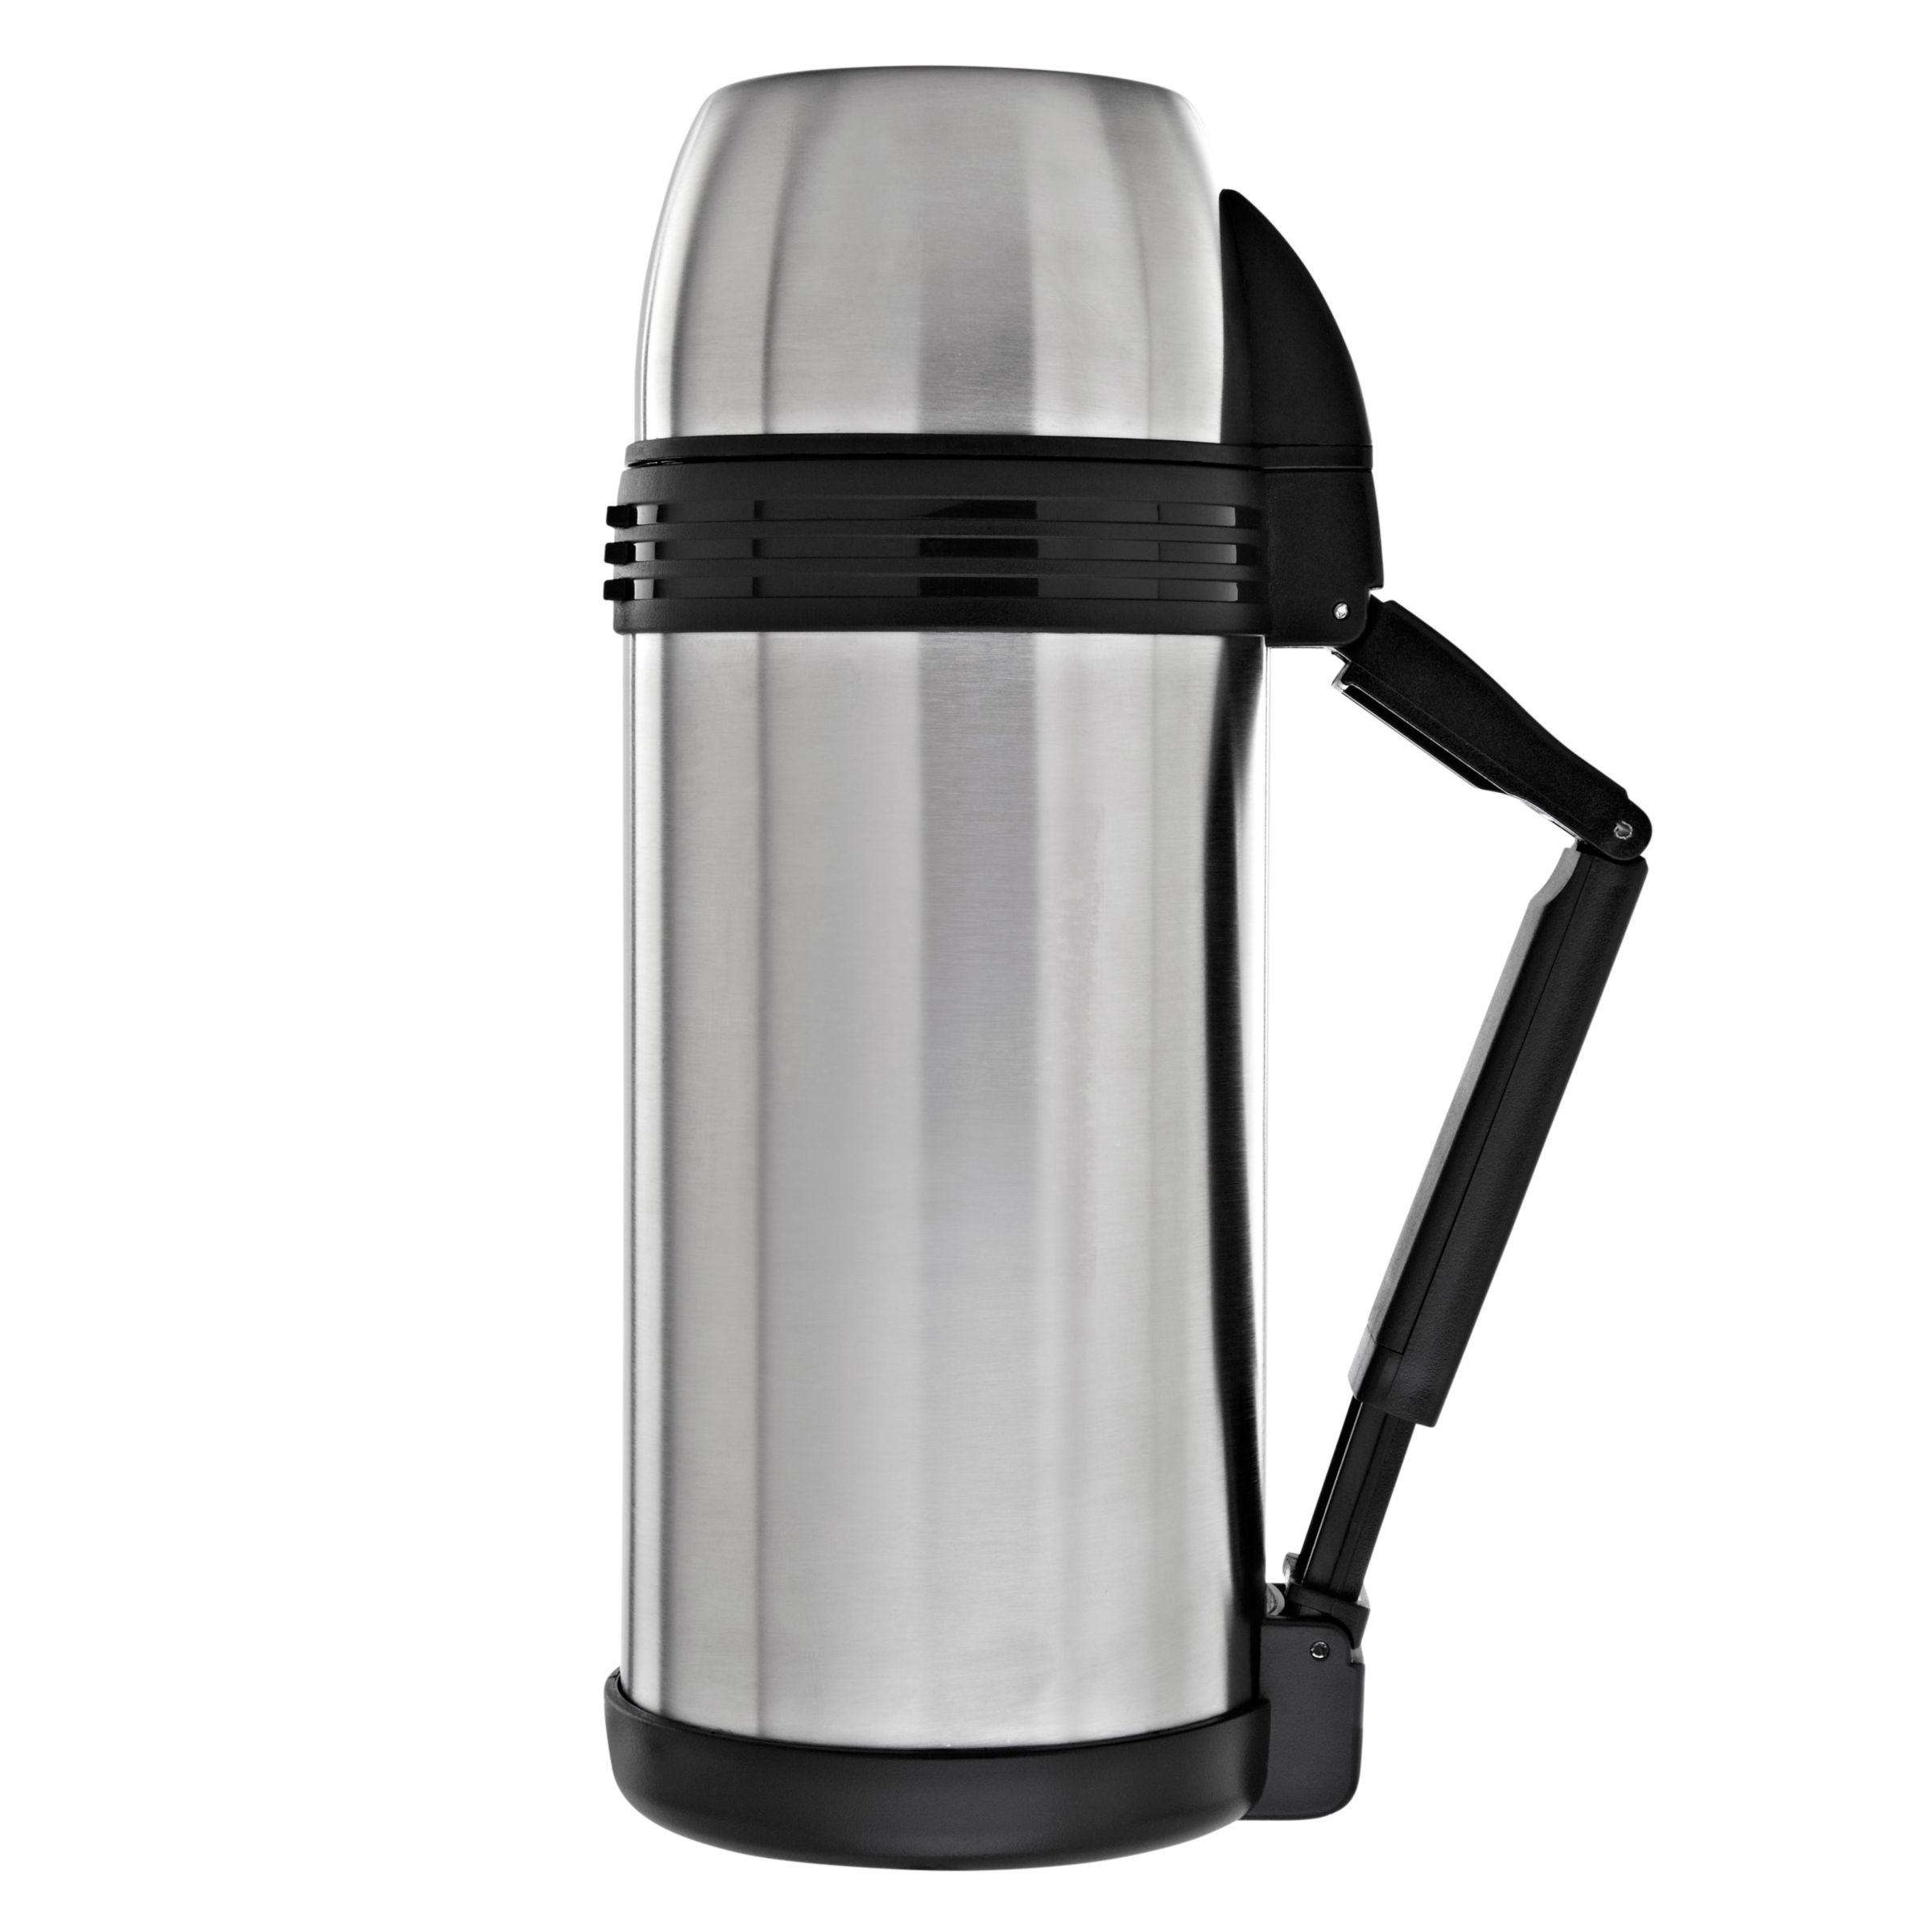 John Lewis Food and Drink Flask, 1.5L